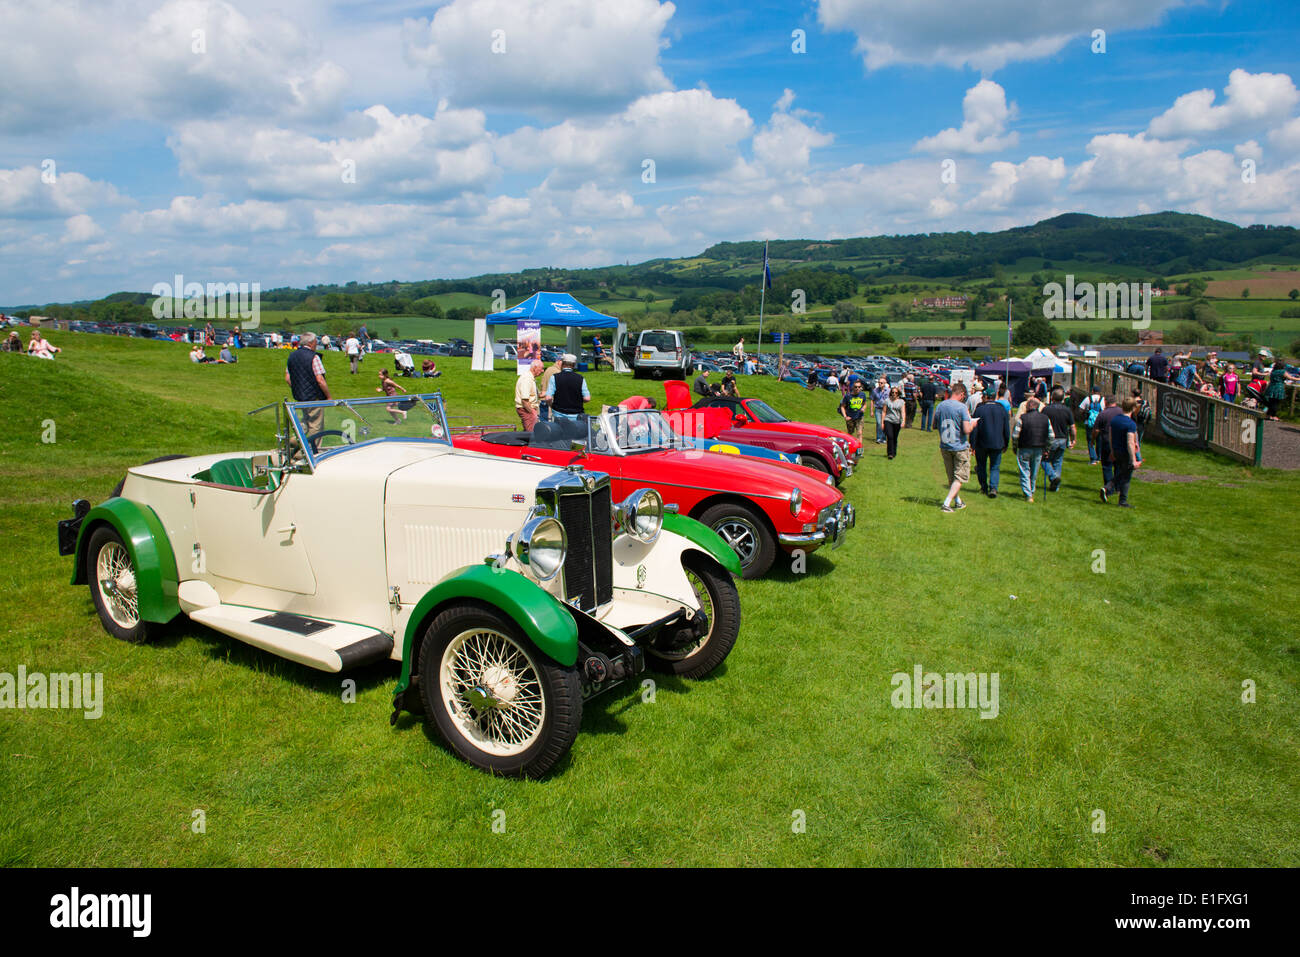 Classic MG sports cars on display at Shelsley Walsh hill climb Worcestershire England UK - Stock Image